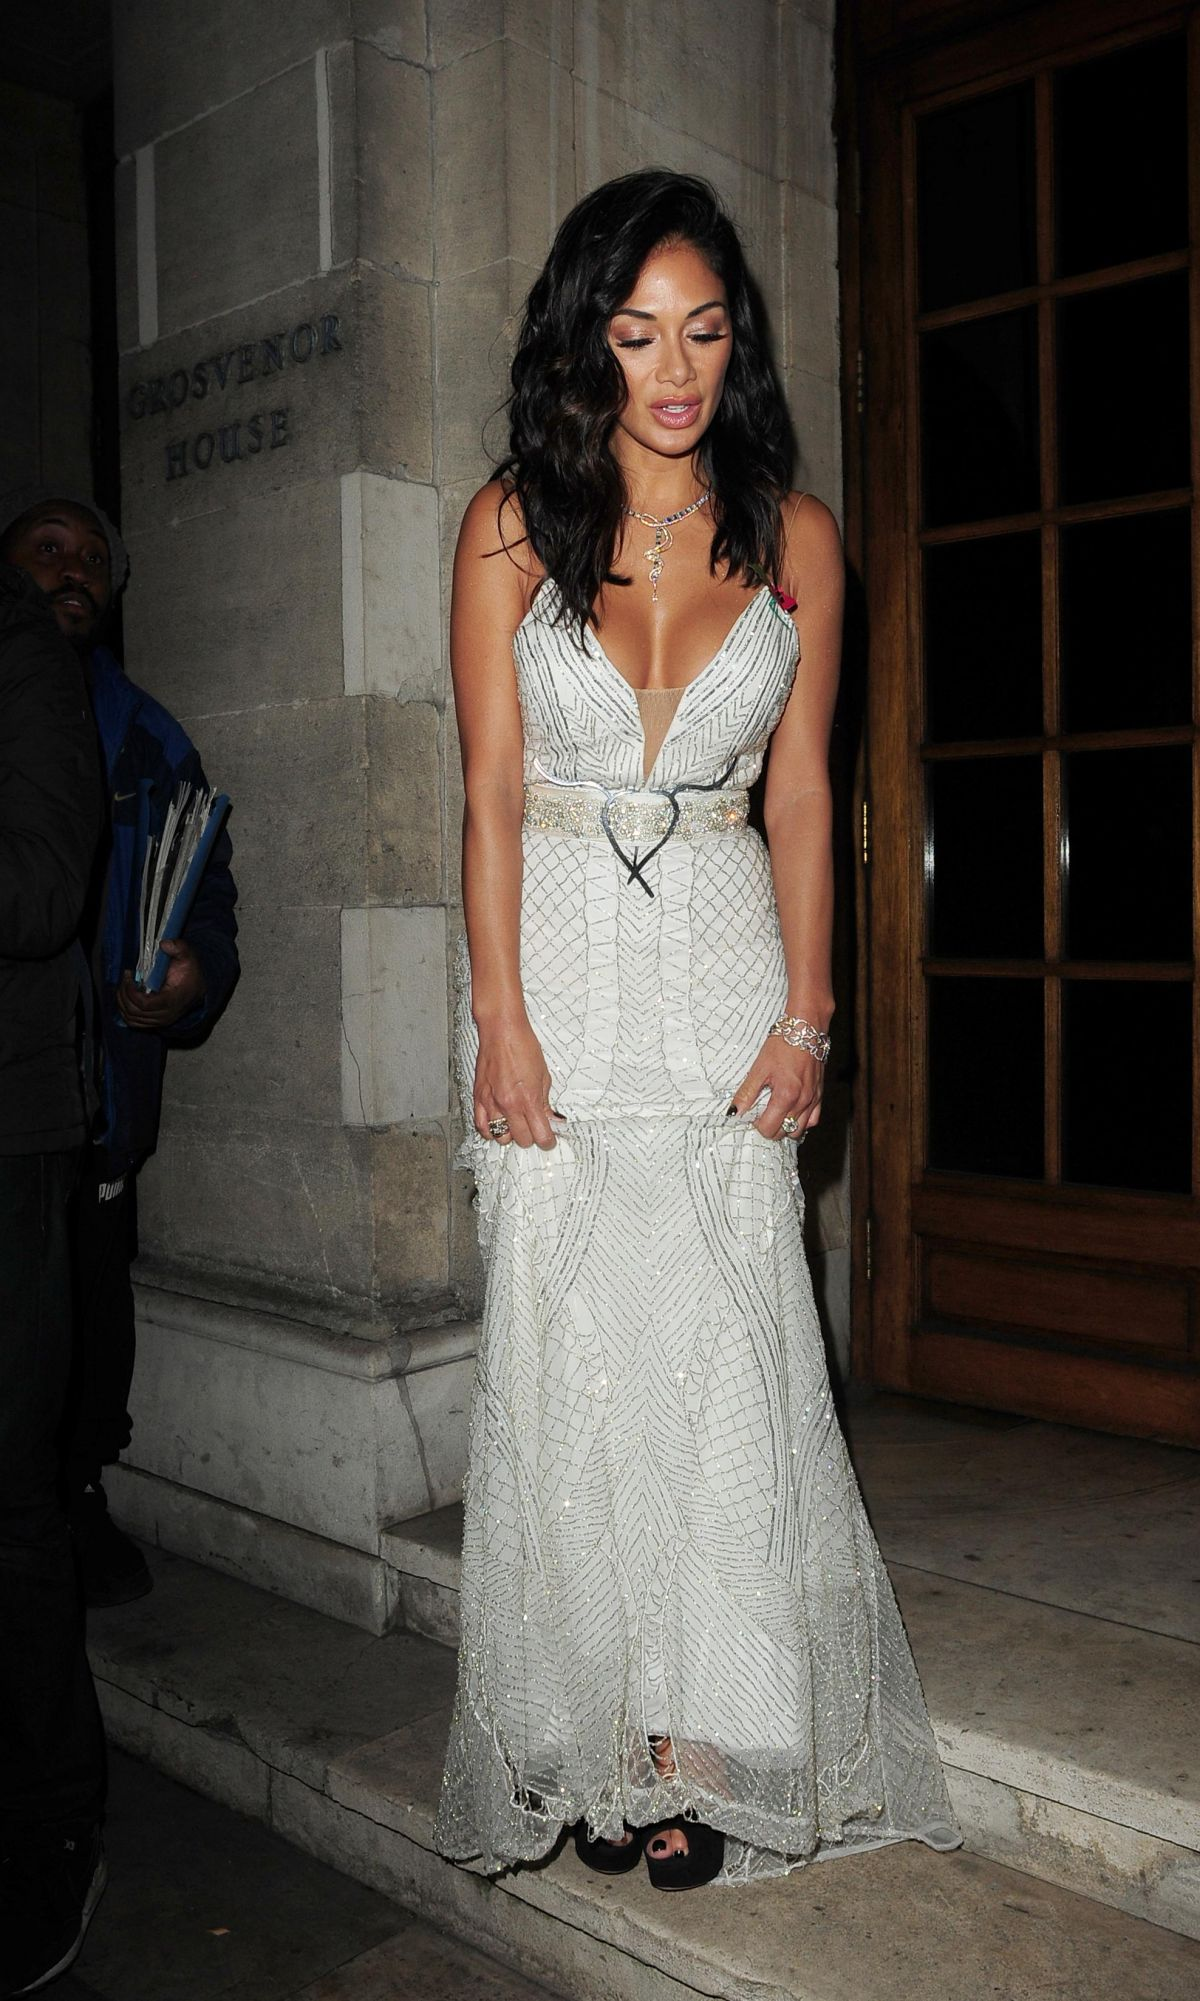 Nicole Scherzinger Leaves the Pride of Britain Awards in London